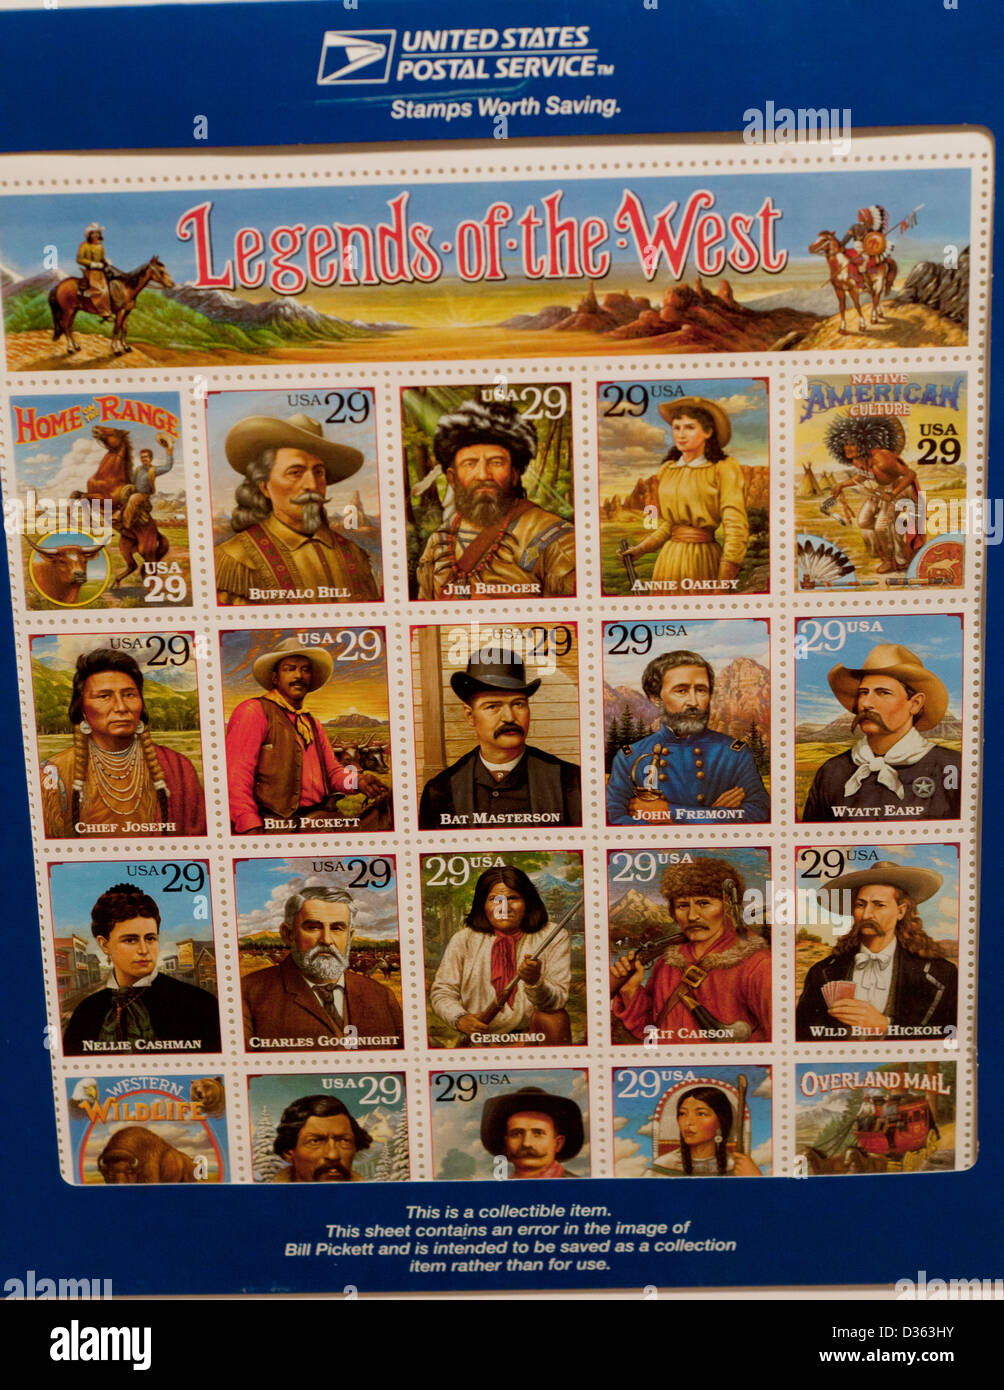 Legends of the West collectible stamp sheet Stock Photo